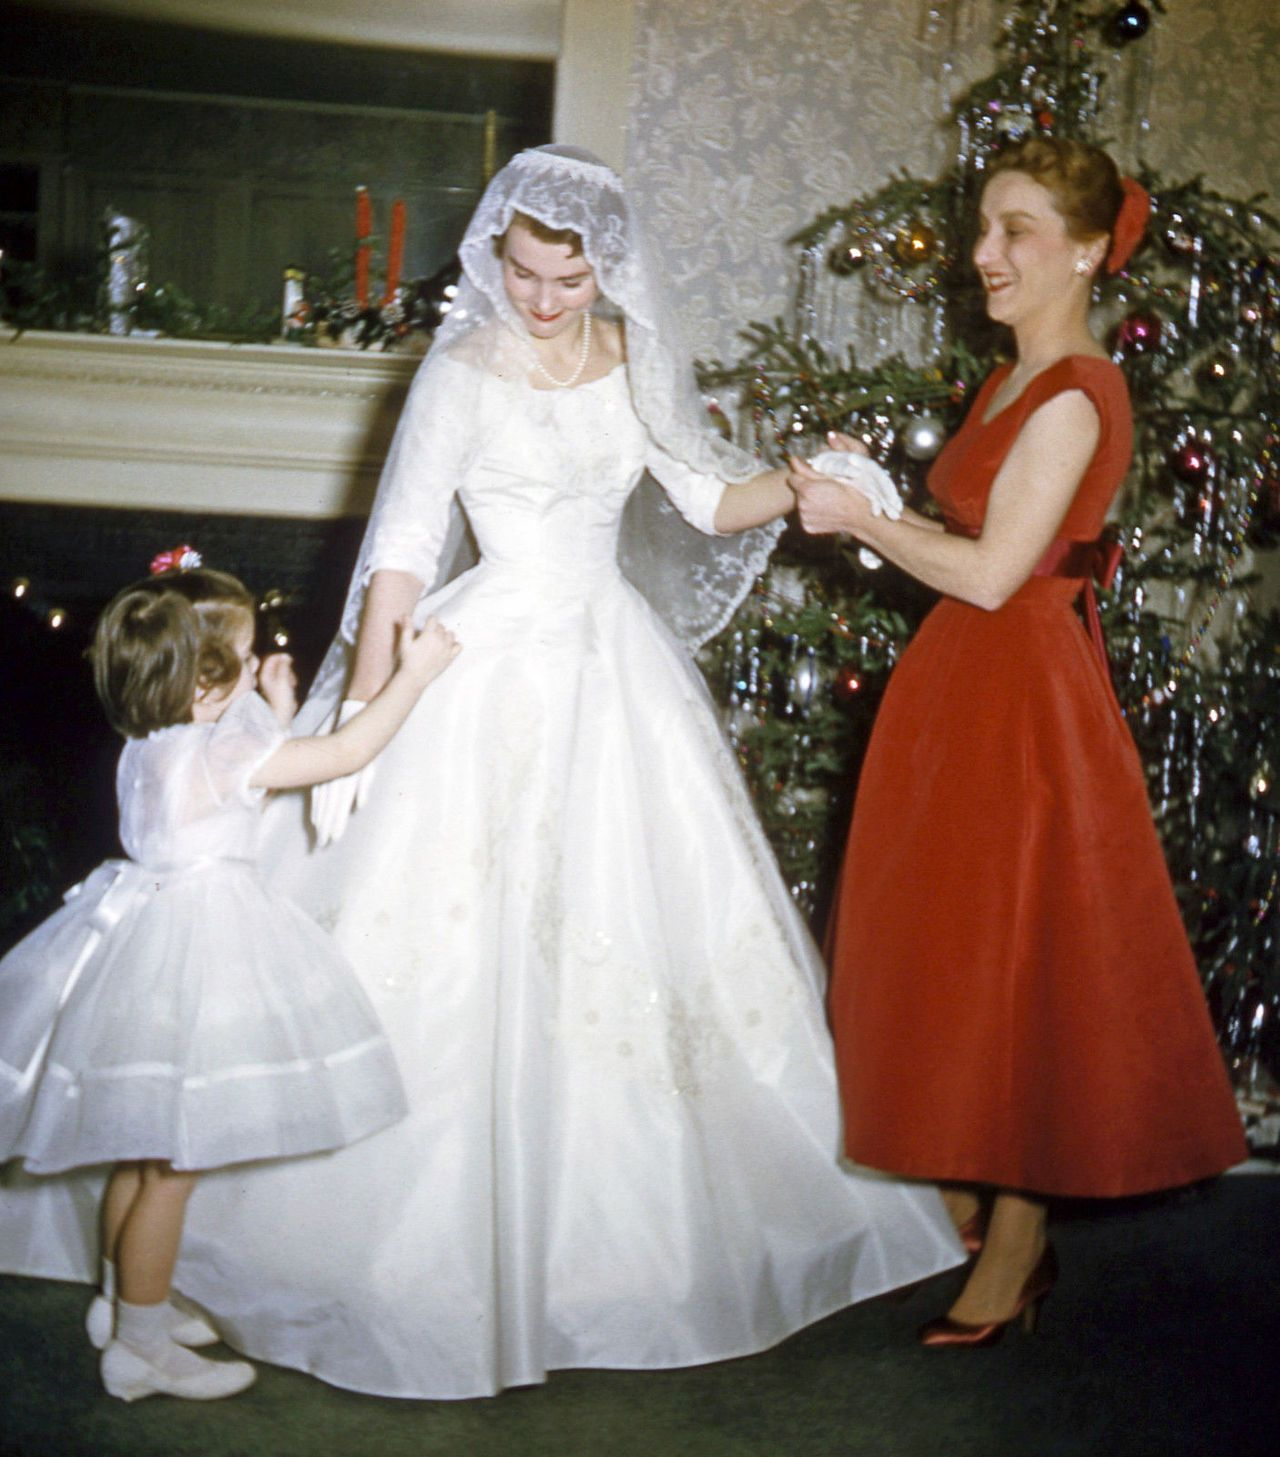 1950's Christmas Bride With Her Bridal Party; Wearing A